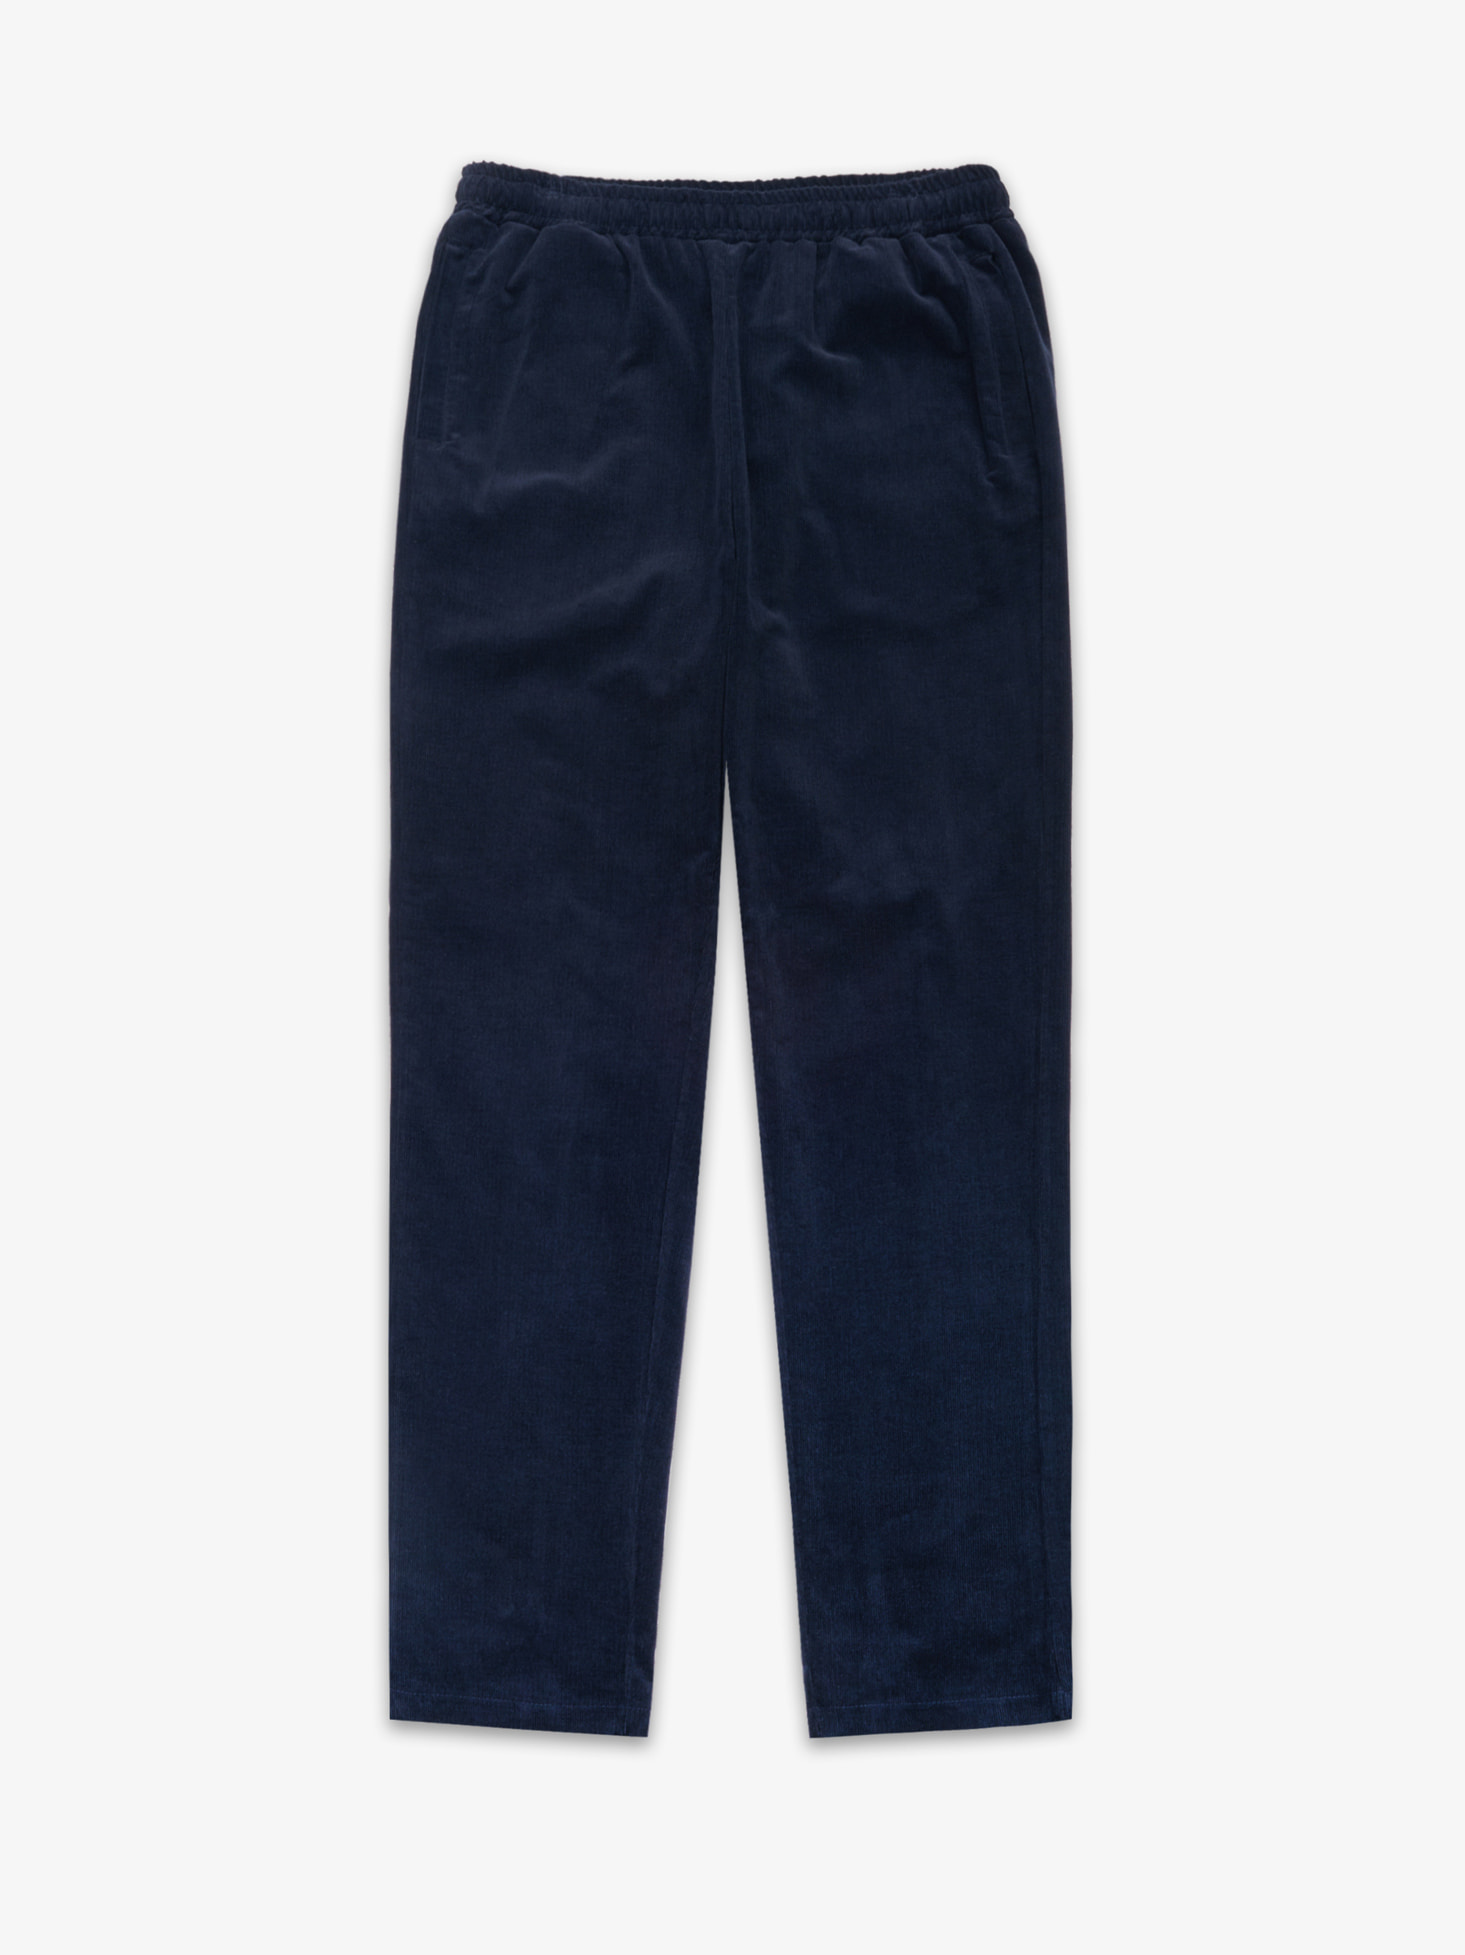 3-DIMENSIONAL PANTS(NAVY CORDUROY) 시즌오프 50% 특별할인 89,000원->